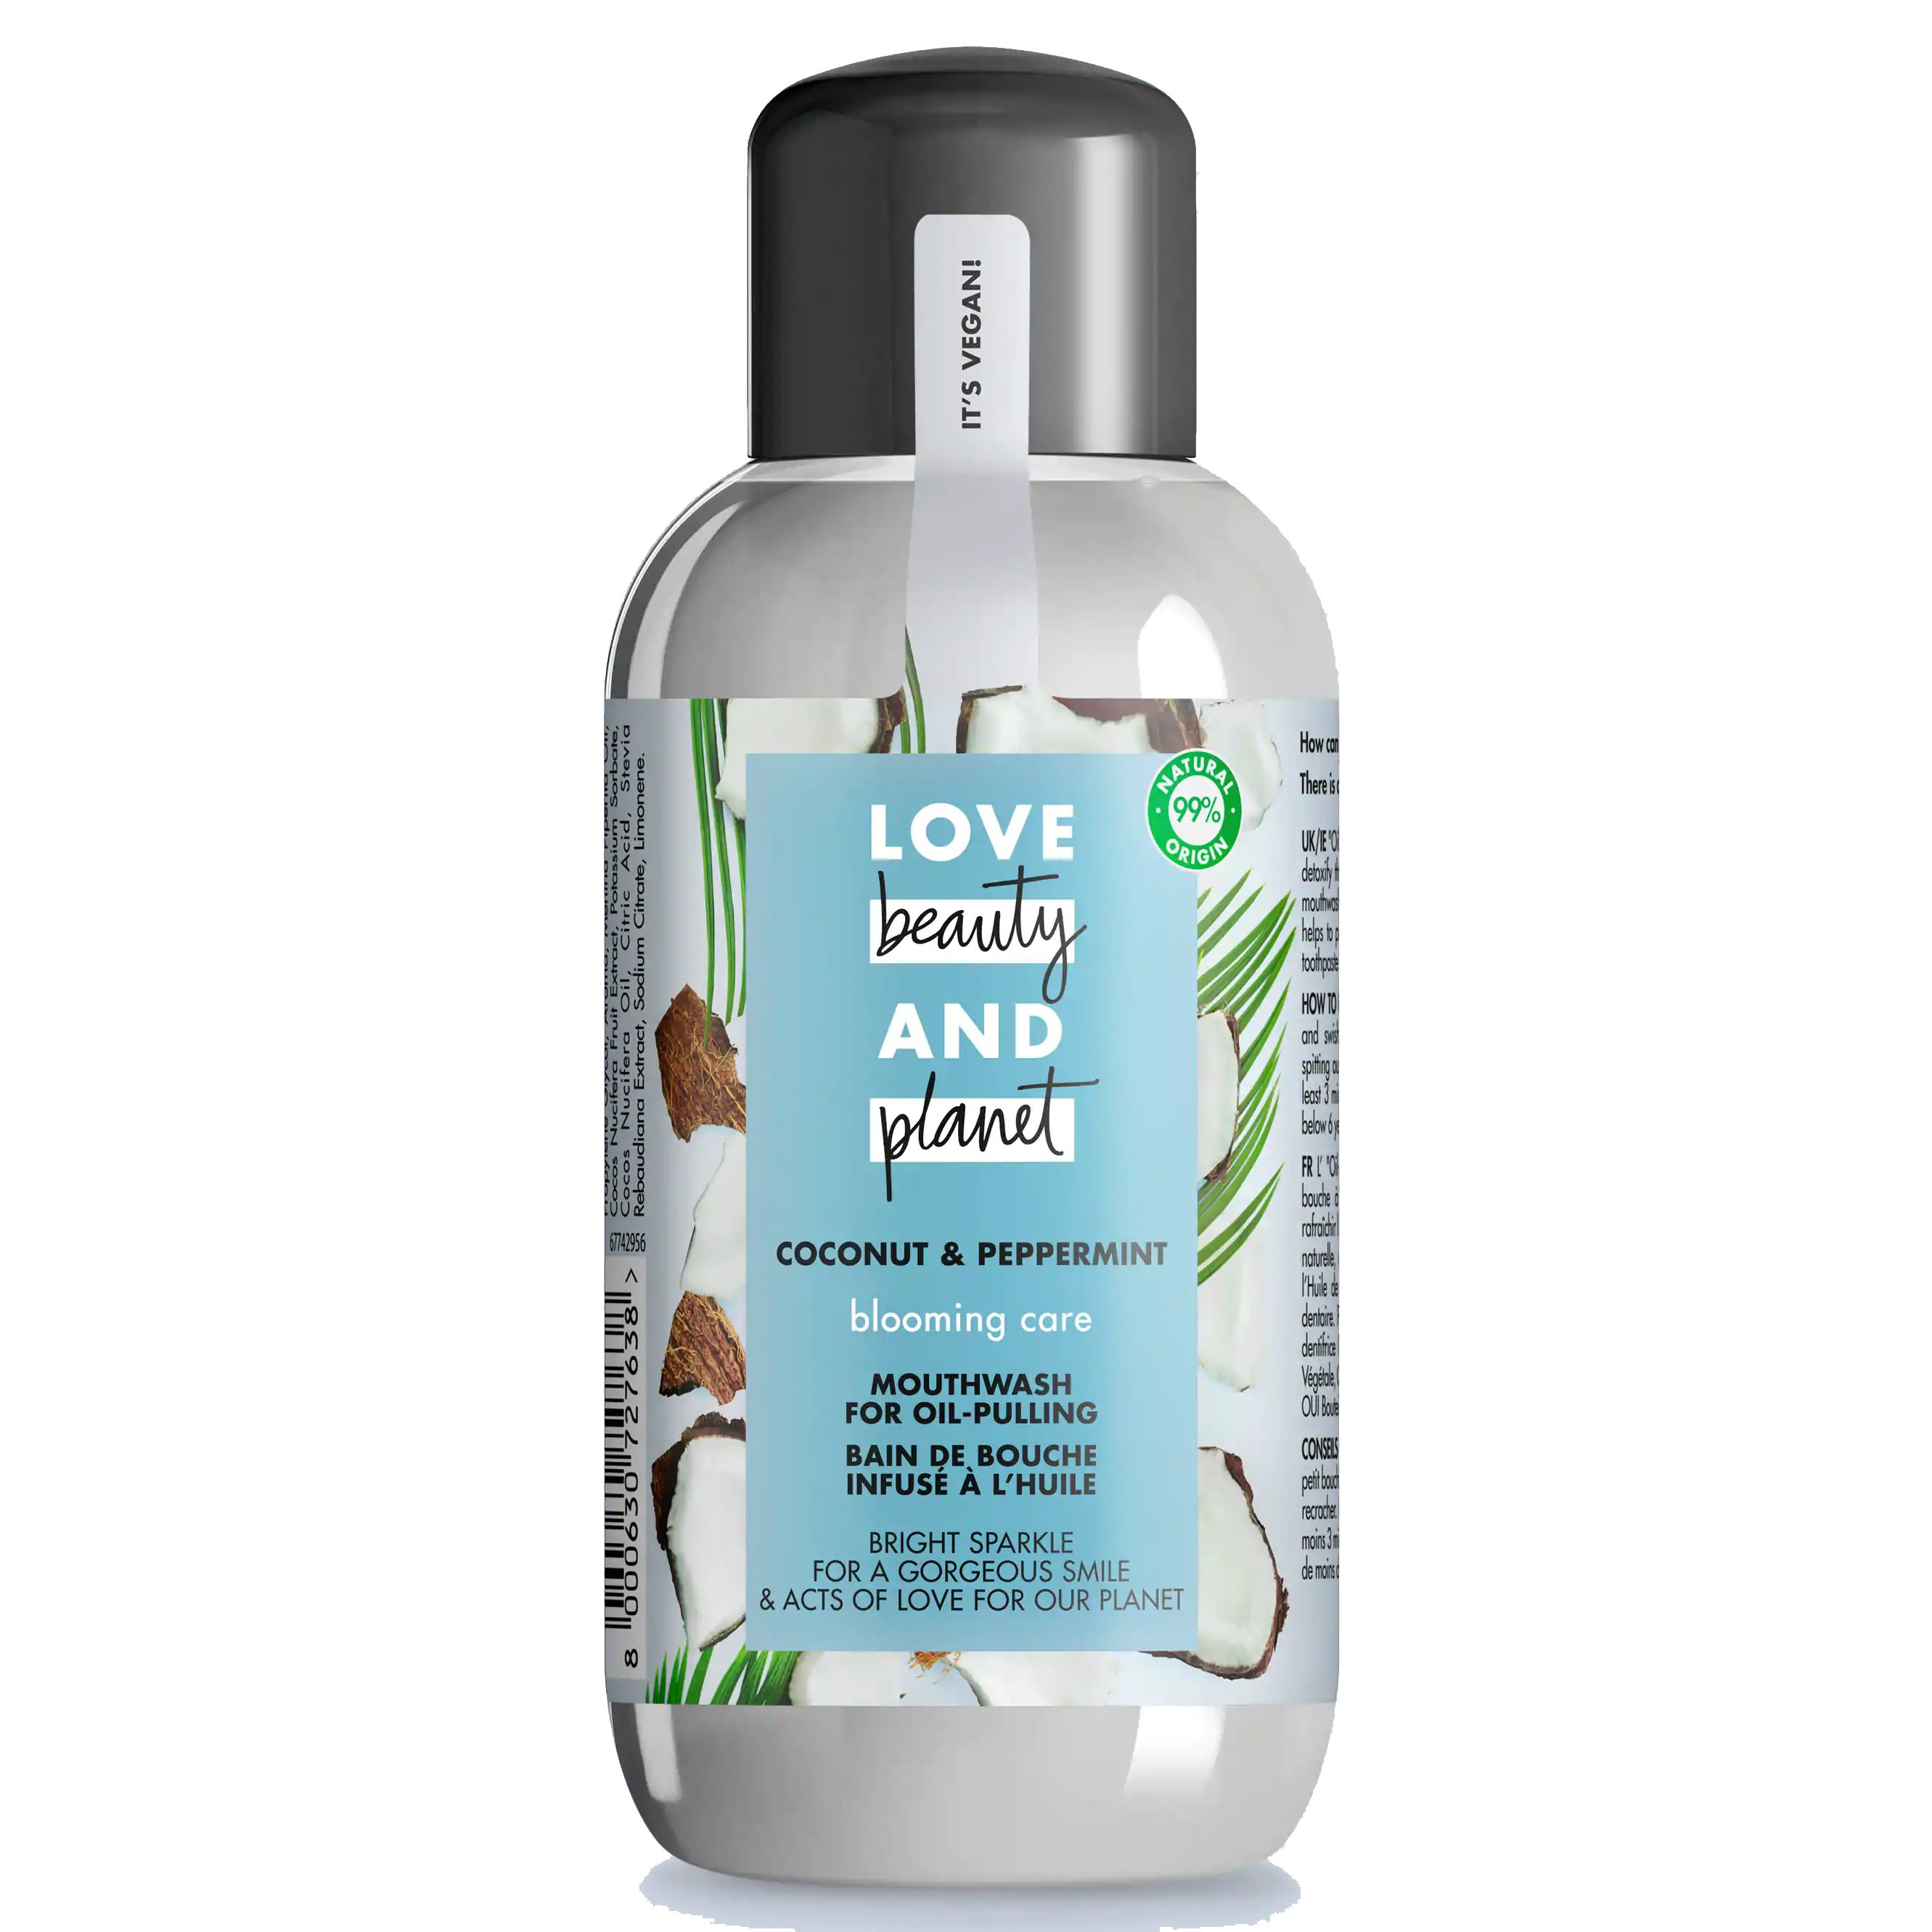 Love Beauty & Planet Coconut & Peppermint Blooming Care Mouthwash Στοματικό Διάλυμα, Πρόληψη της Πλάκας & Δροσερή Αναπνοή 250ml